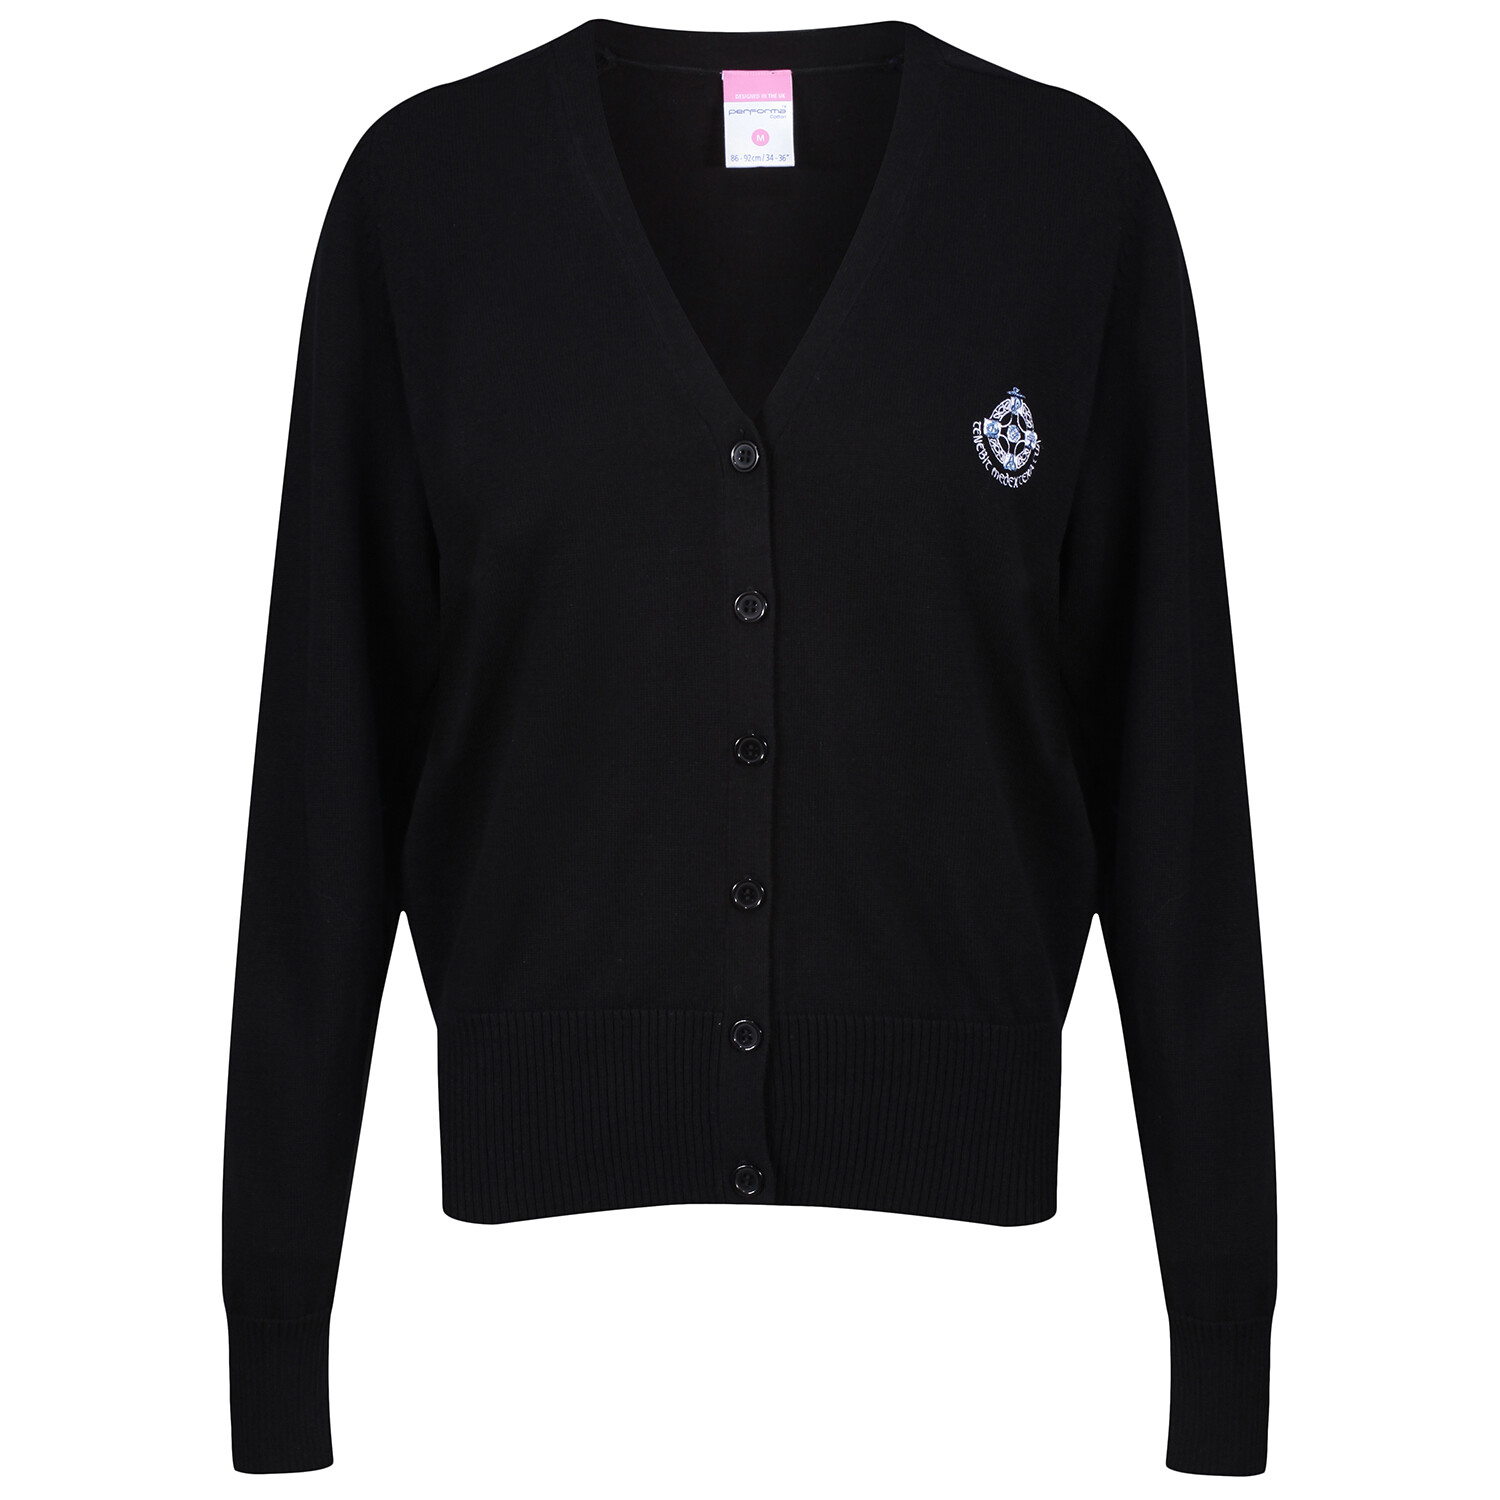 St Columba's High Girls Knitted Cardigan